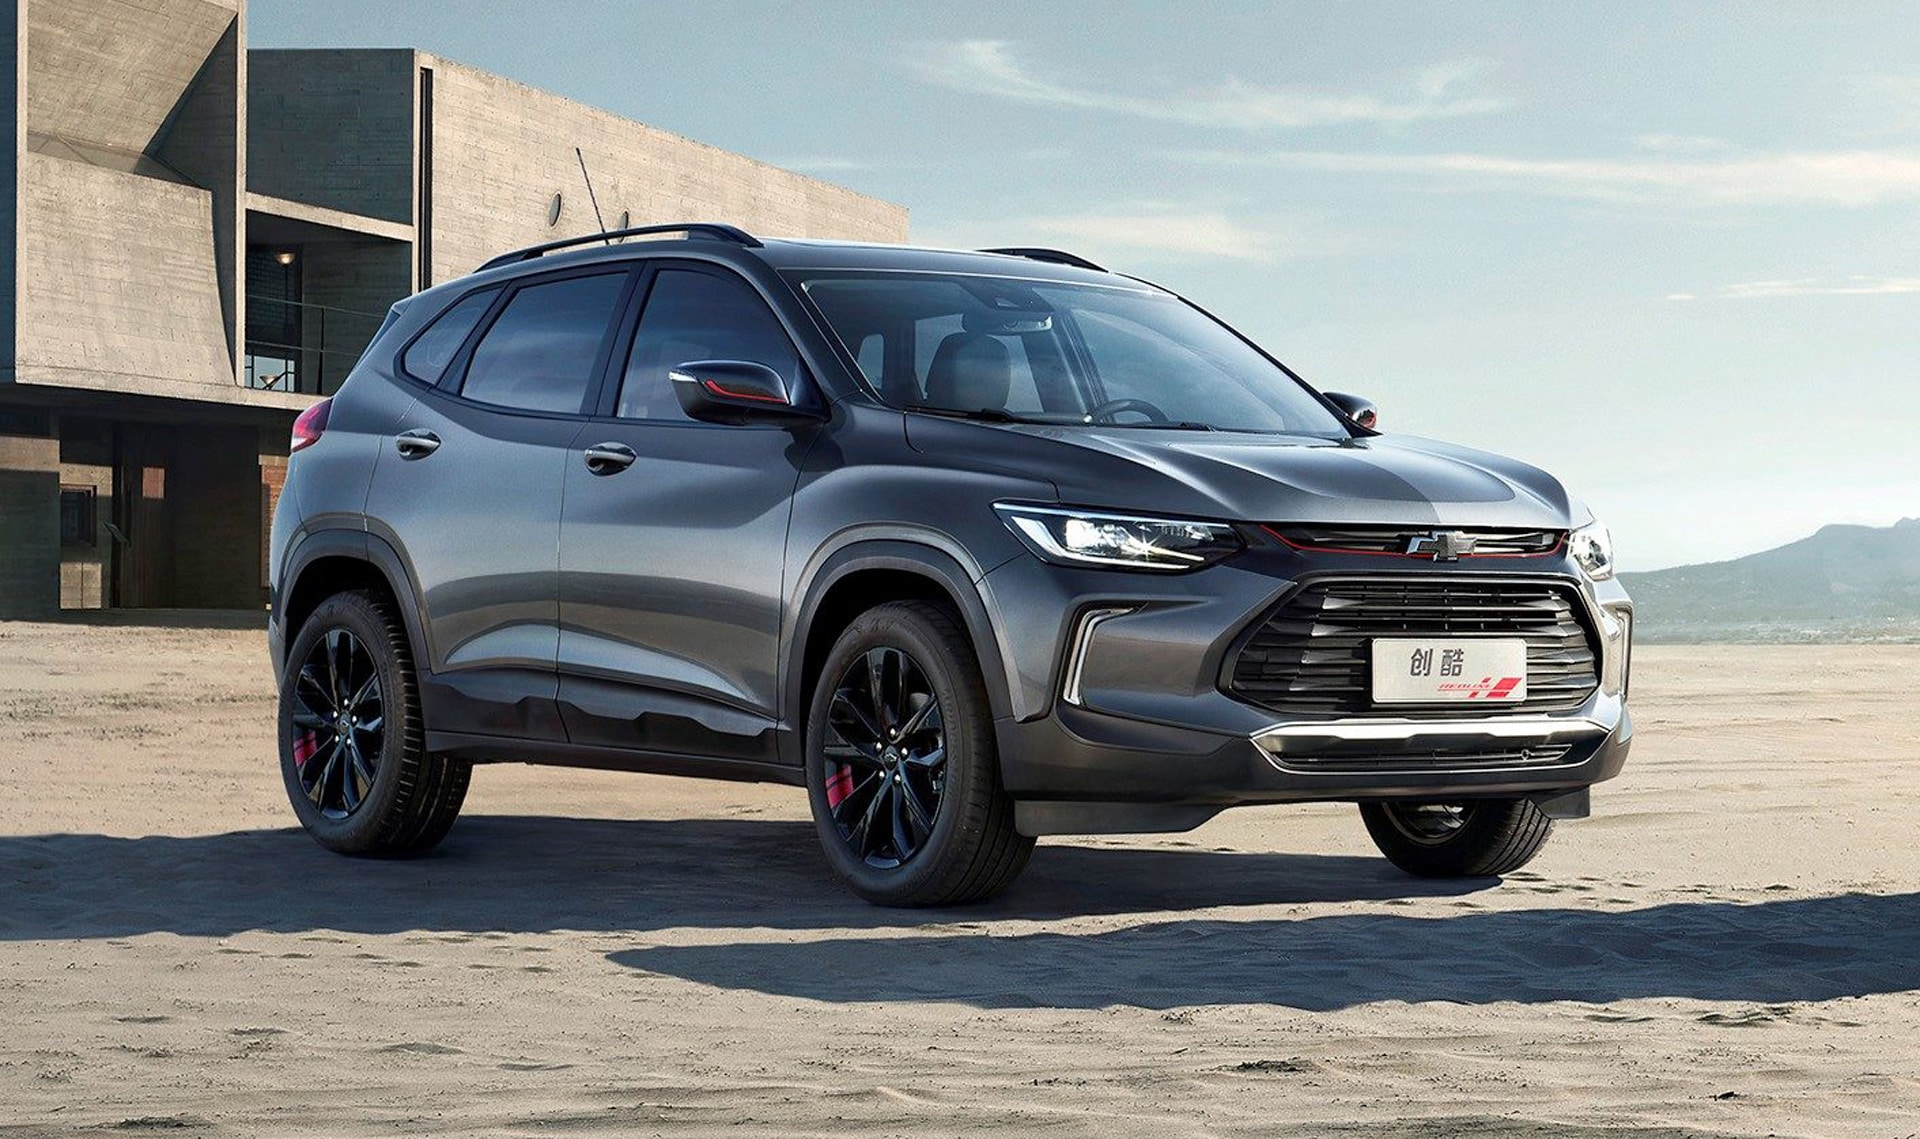 2020 Chevrolet Trailblazer Return And Release Date >> Chevy Confirms Chevrolet Trailblazer Will Replace Trax Motor